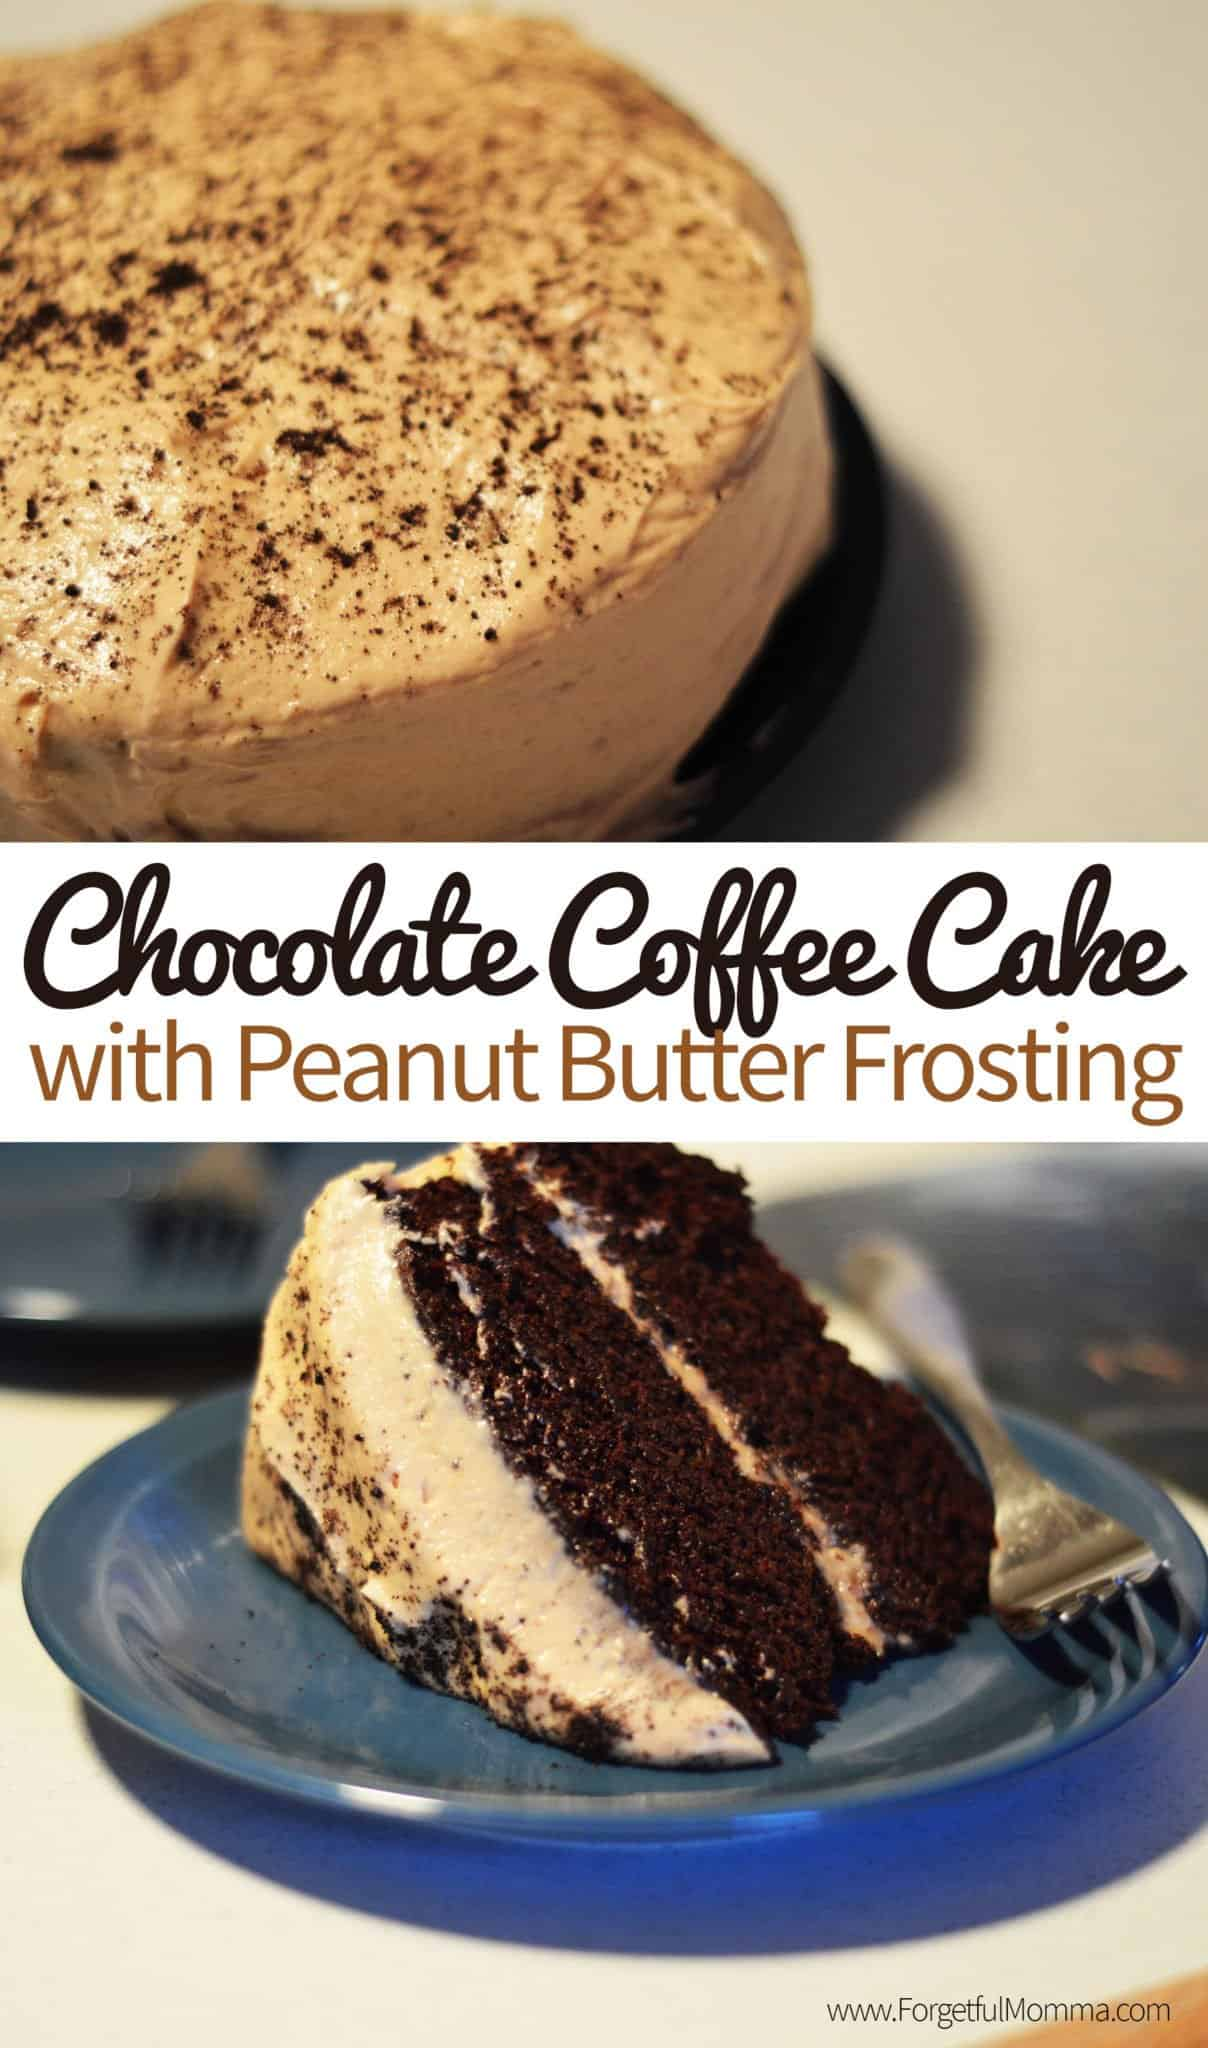 Chocolate Coffee Cake with Peanut Butter Frosting - Forgetful Momma